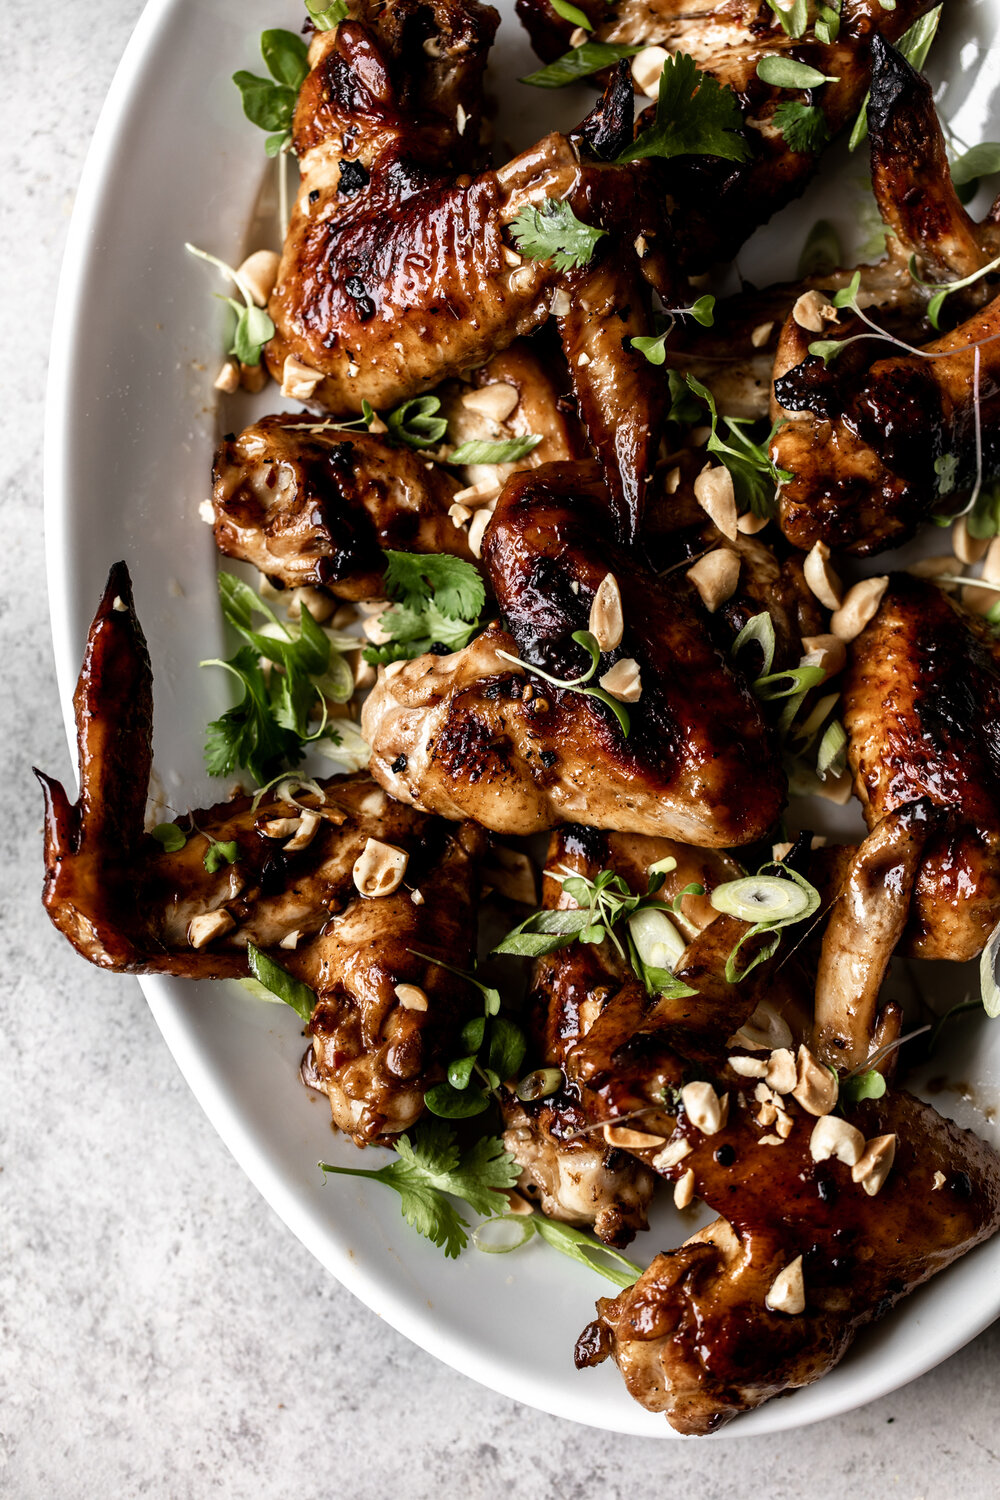 Grilled Garlic Soy Chicken Wings with Herbs & Peanuts-27.jpg